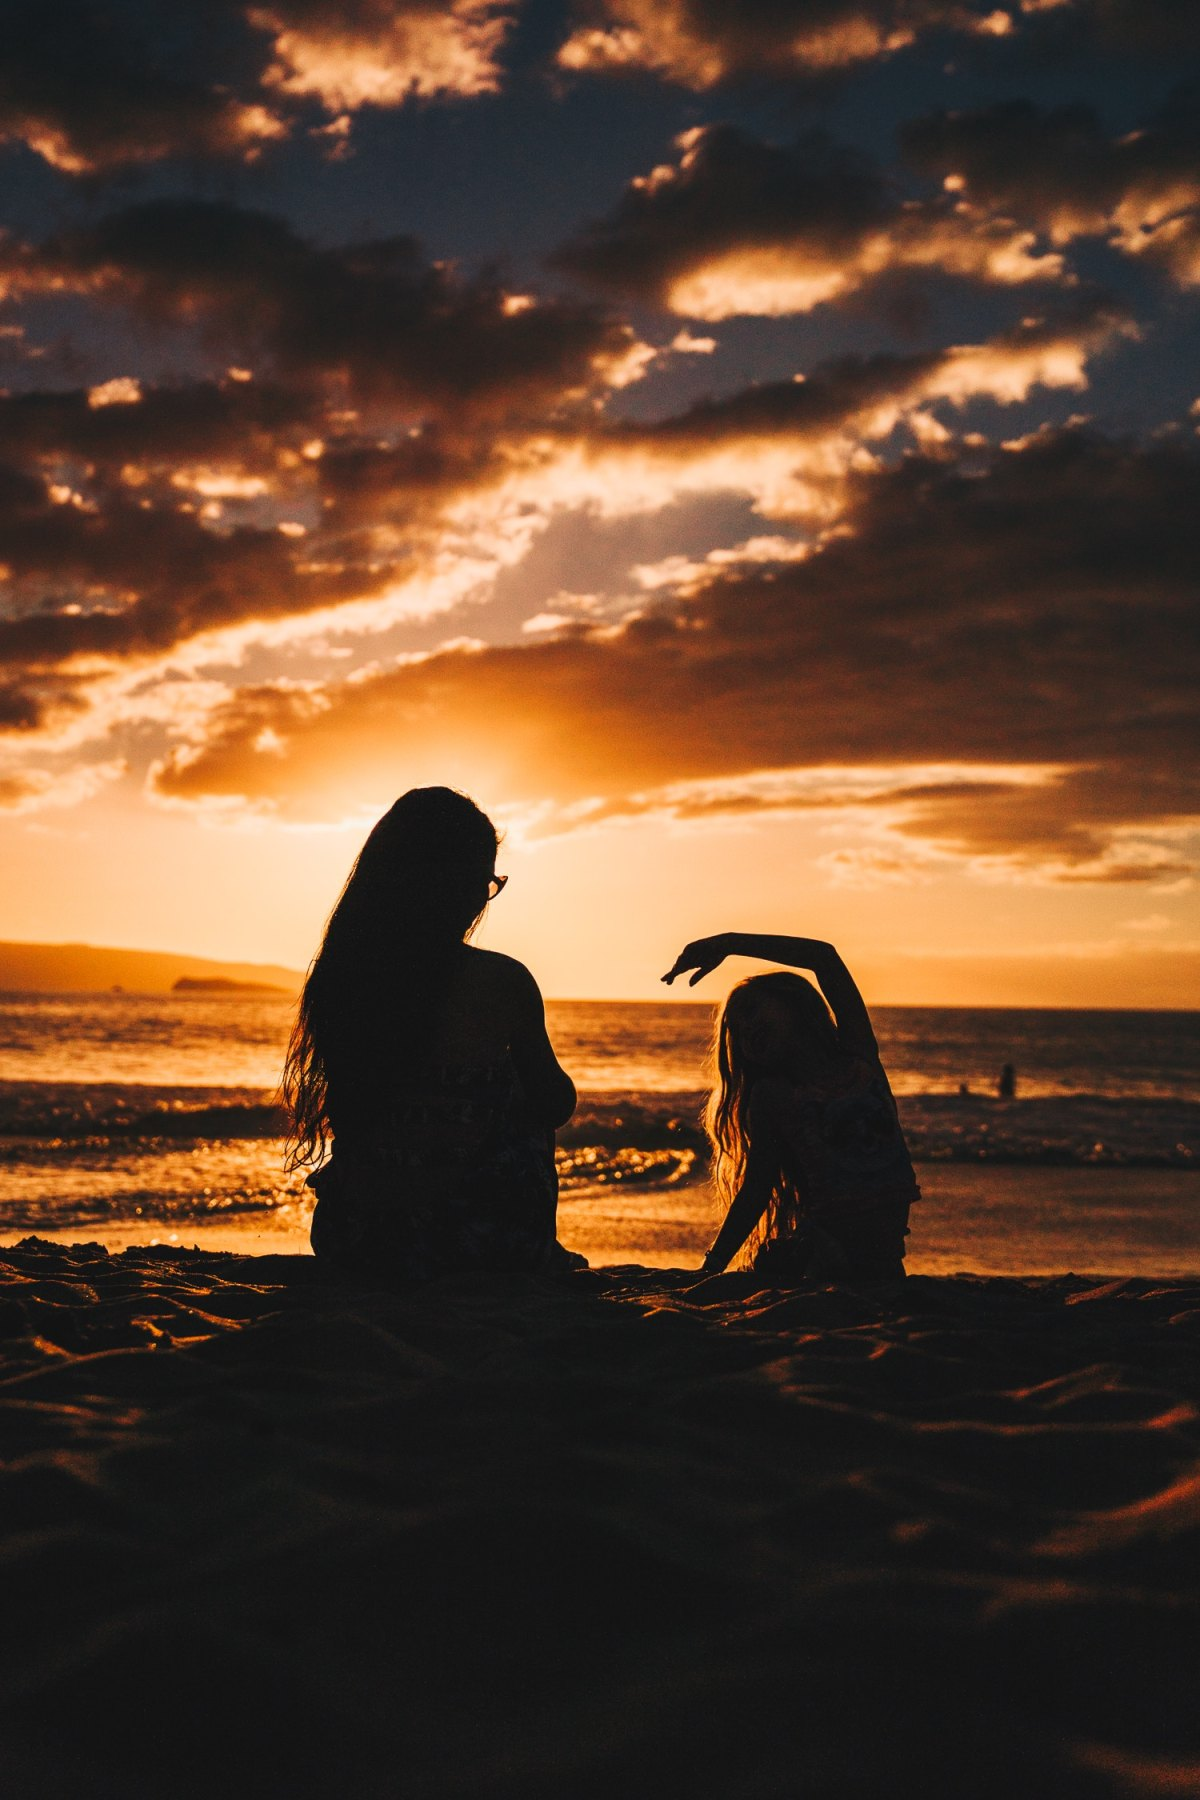 Mother's Day tribute, Mother and Daughter at the Beach Watching the Sunset